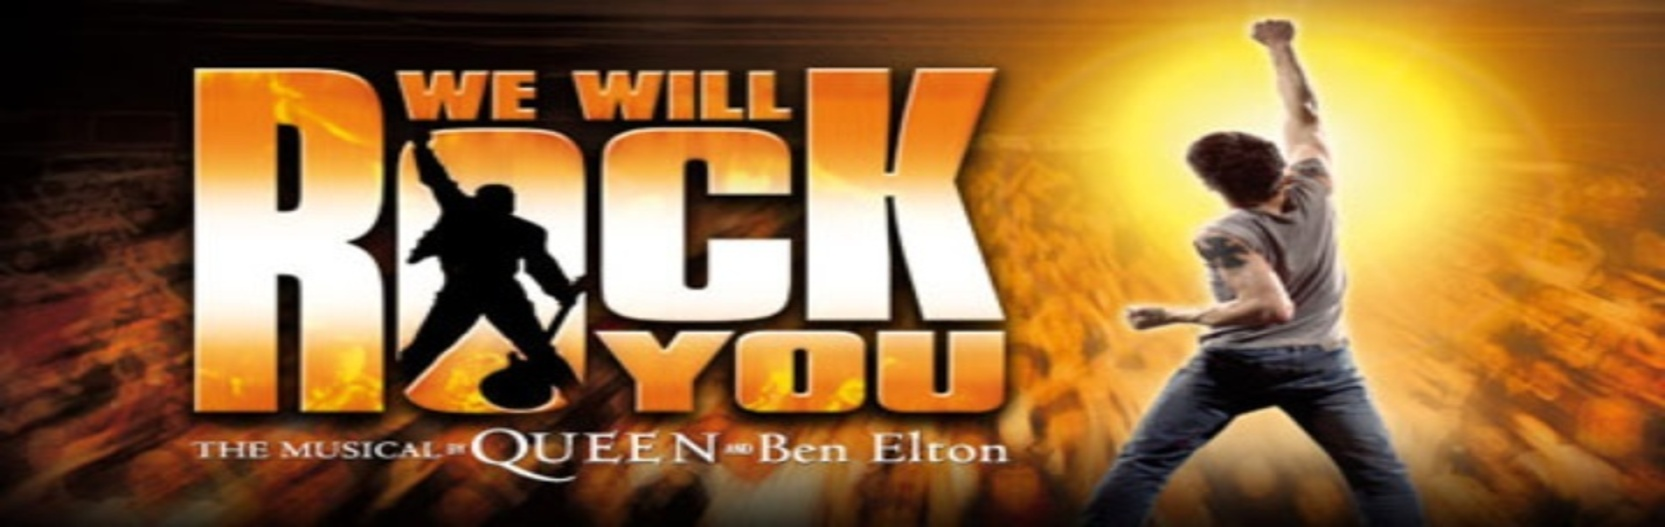 WE WILL ROCK YOU – 2